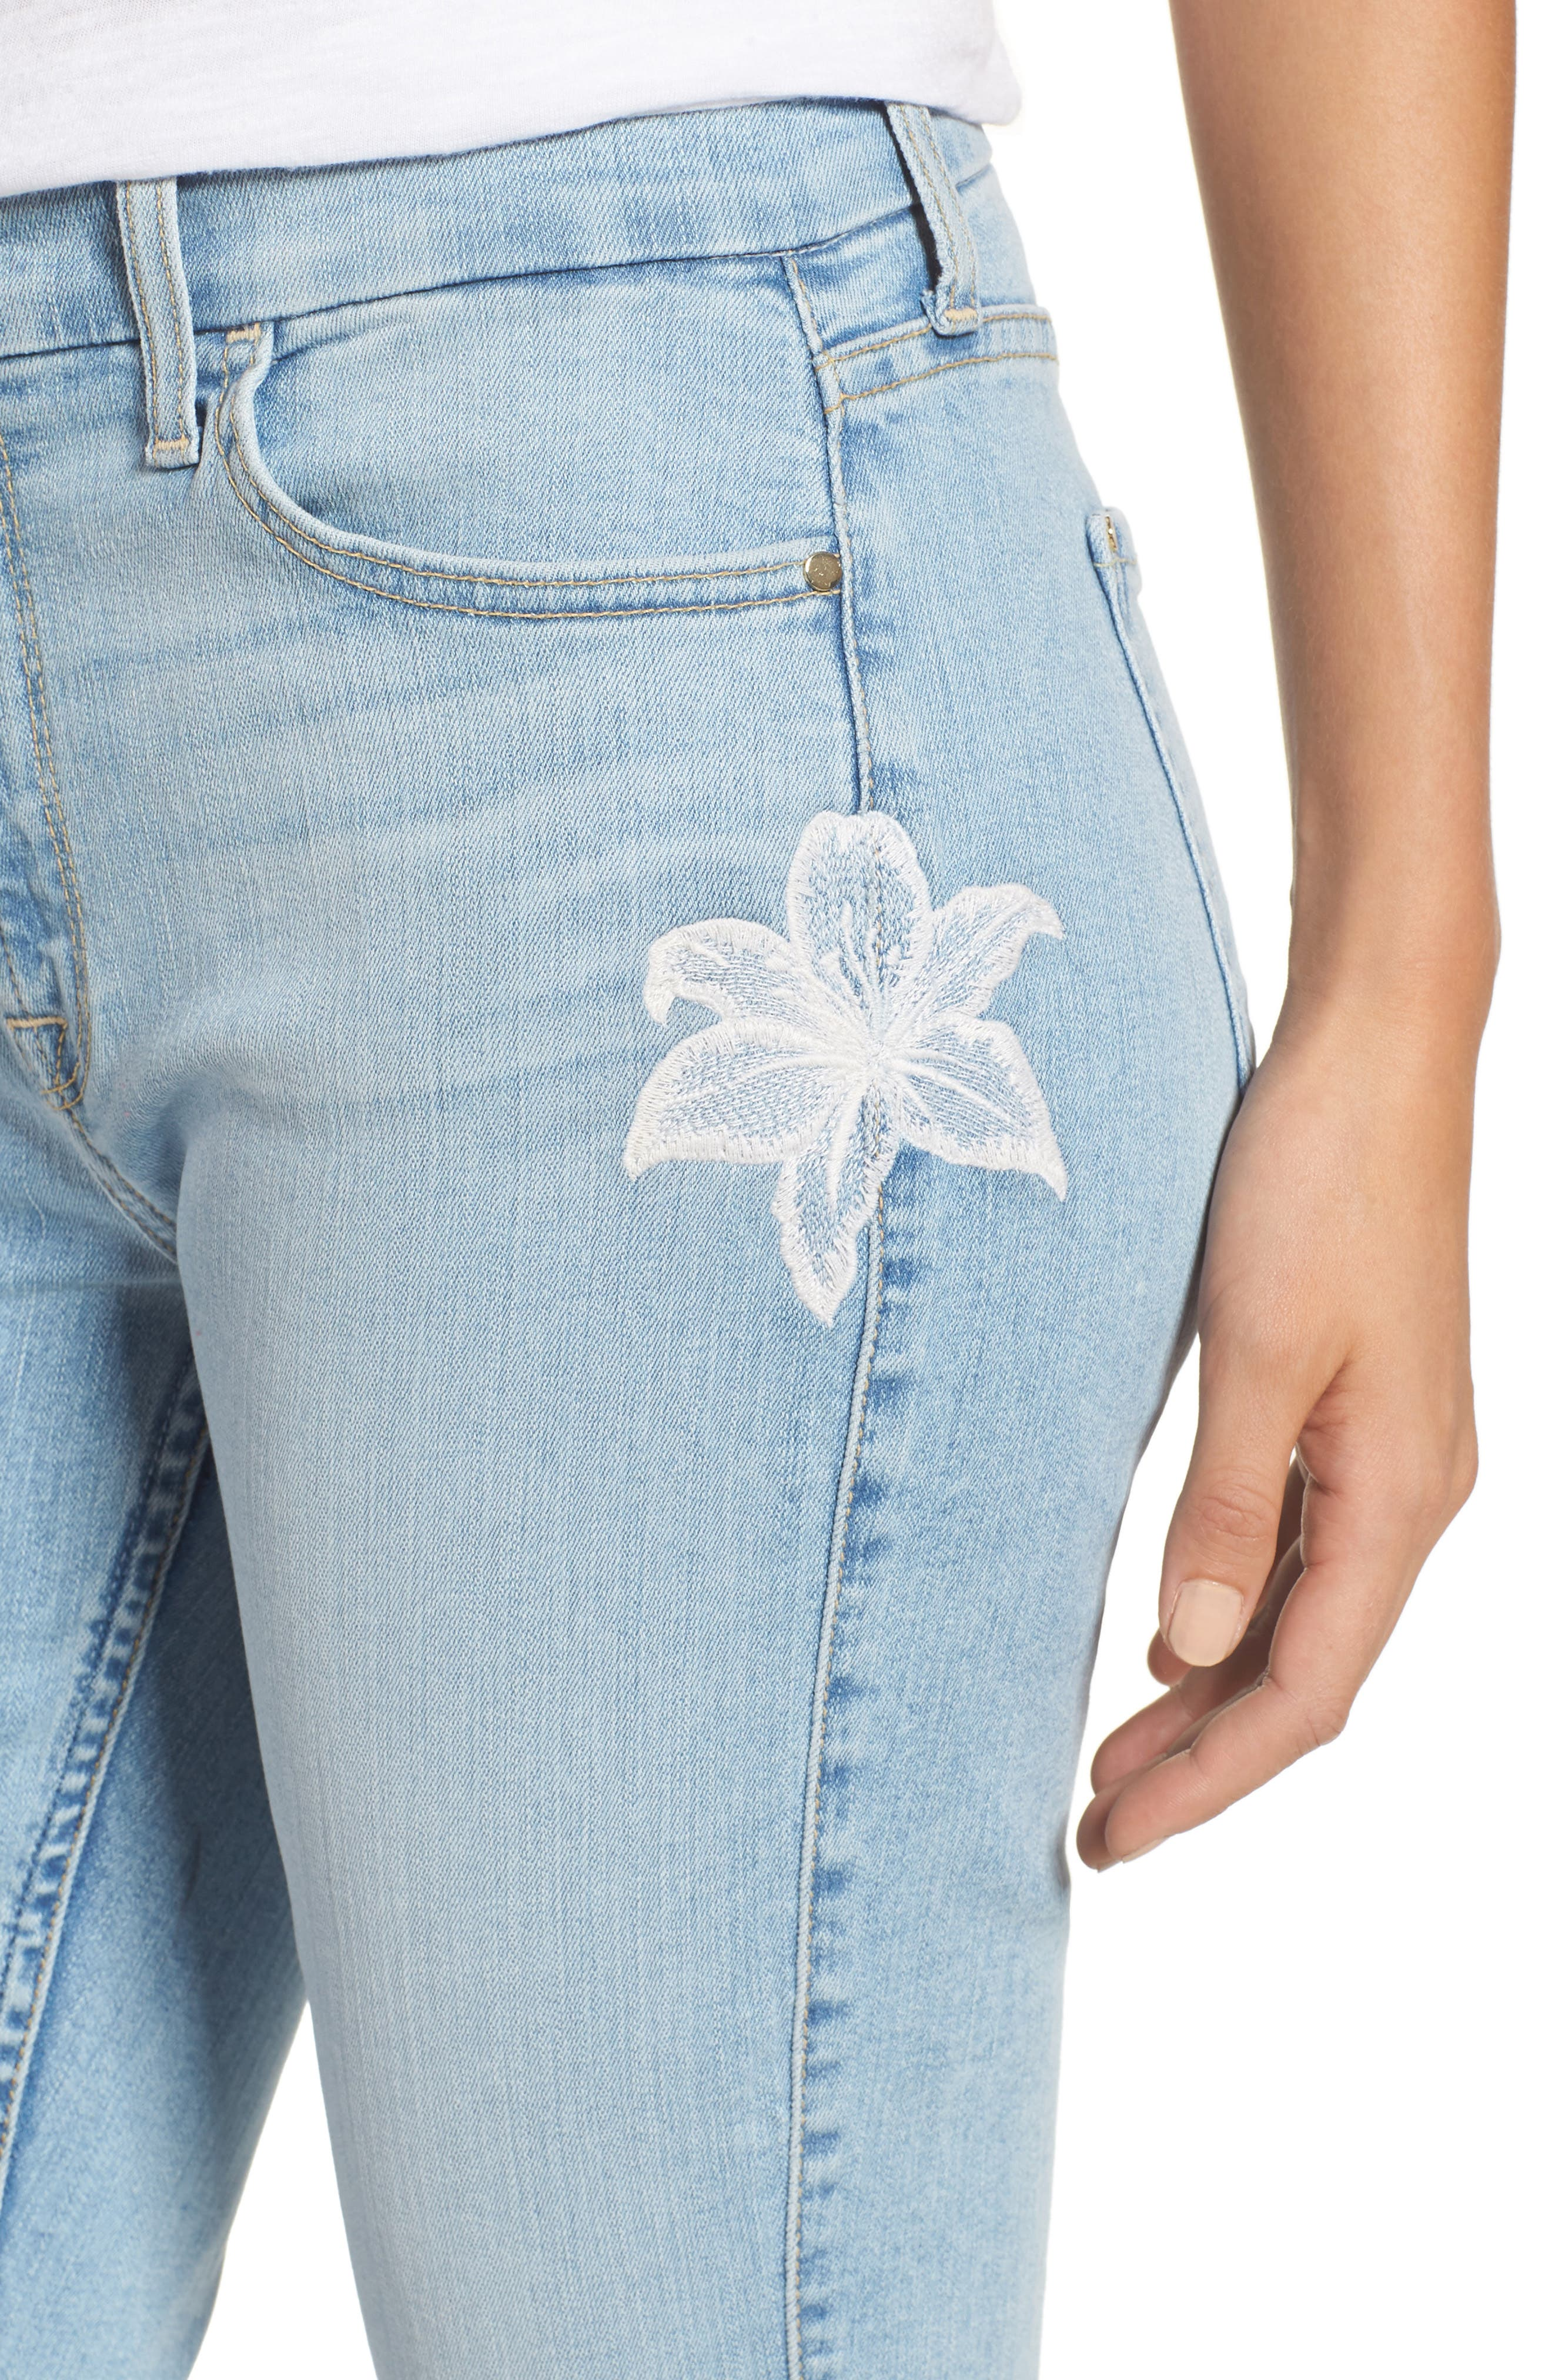 Jen 7 Embroidered Stretch Sklnny Ankle Jeans,                             Alternate thumbnail 4, color,                             Riche Touch Playa Vista